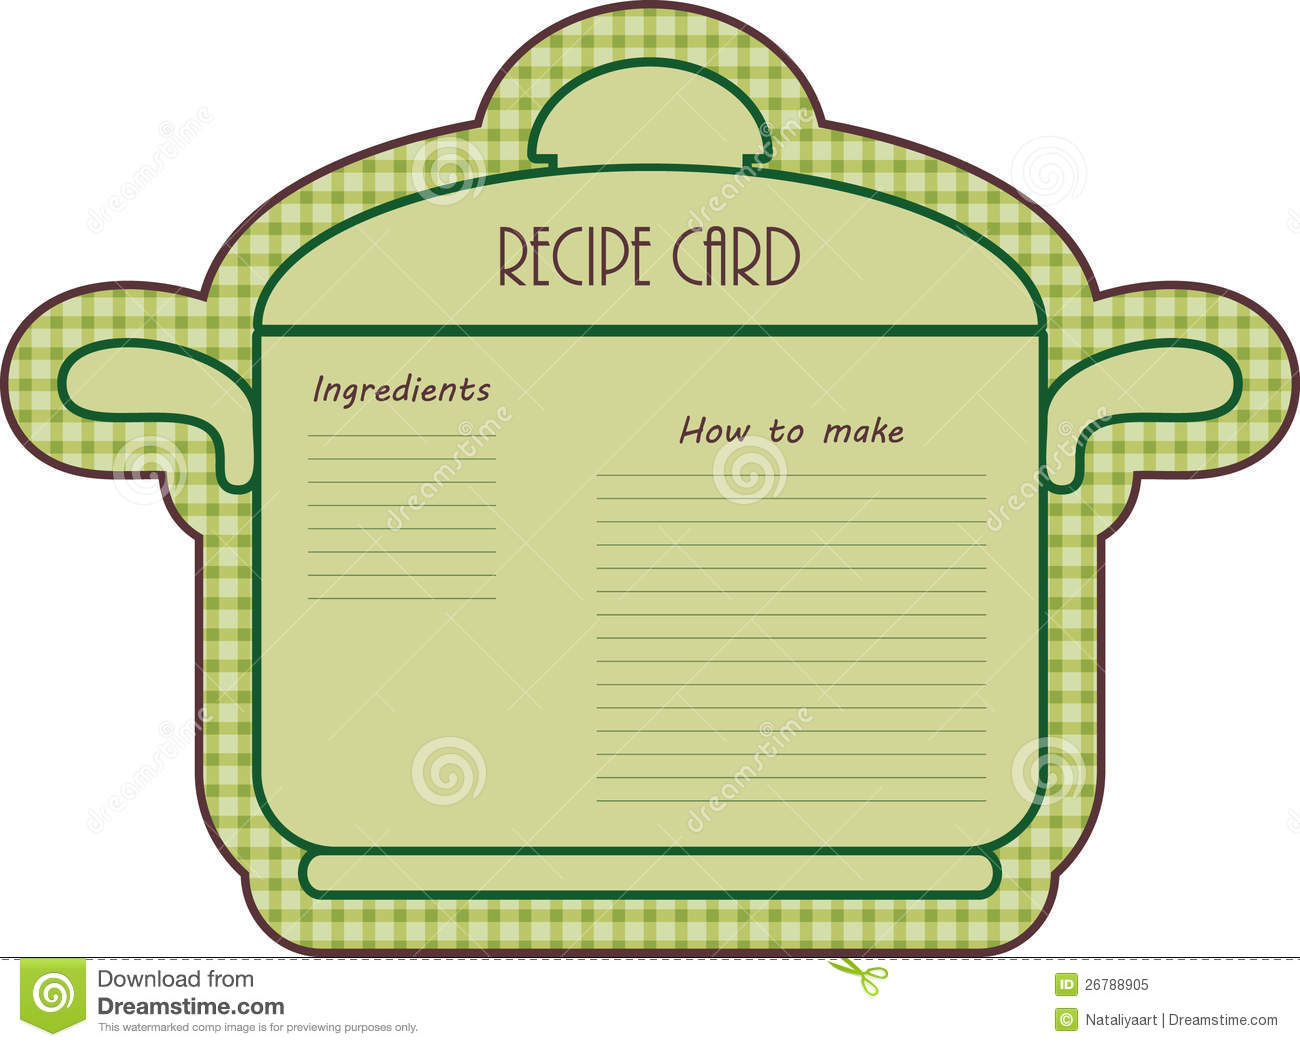 recipe card clipart panda free clipart images rh clipartpanda com Recipe Card Format Recipe Card Format